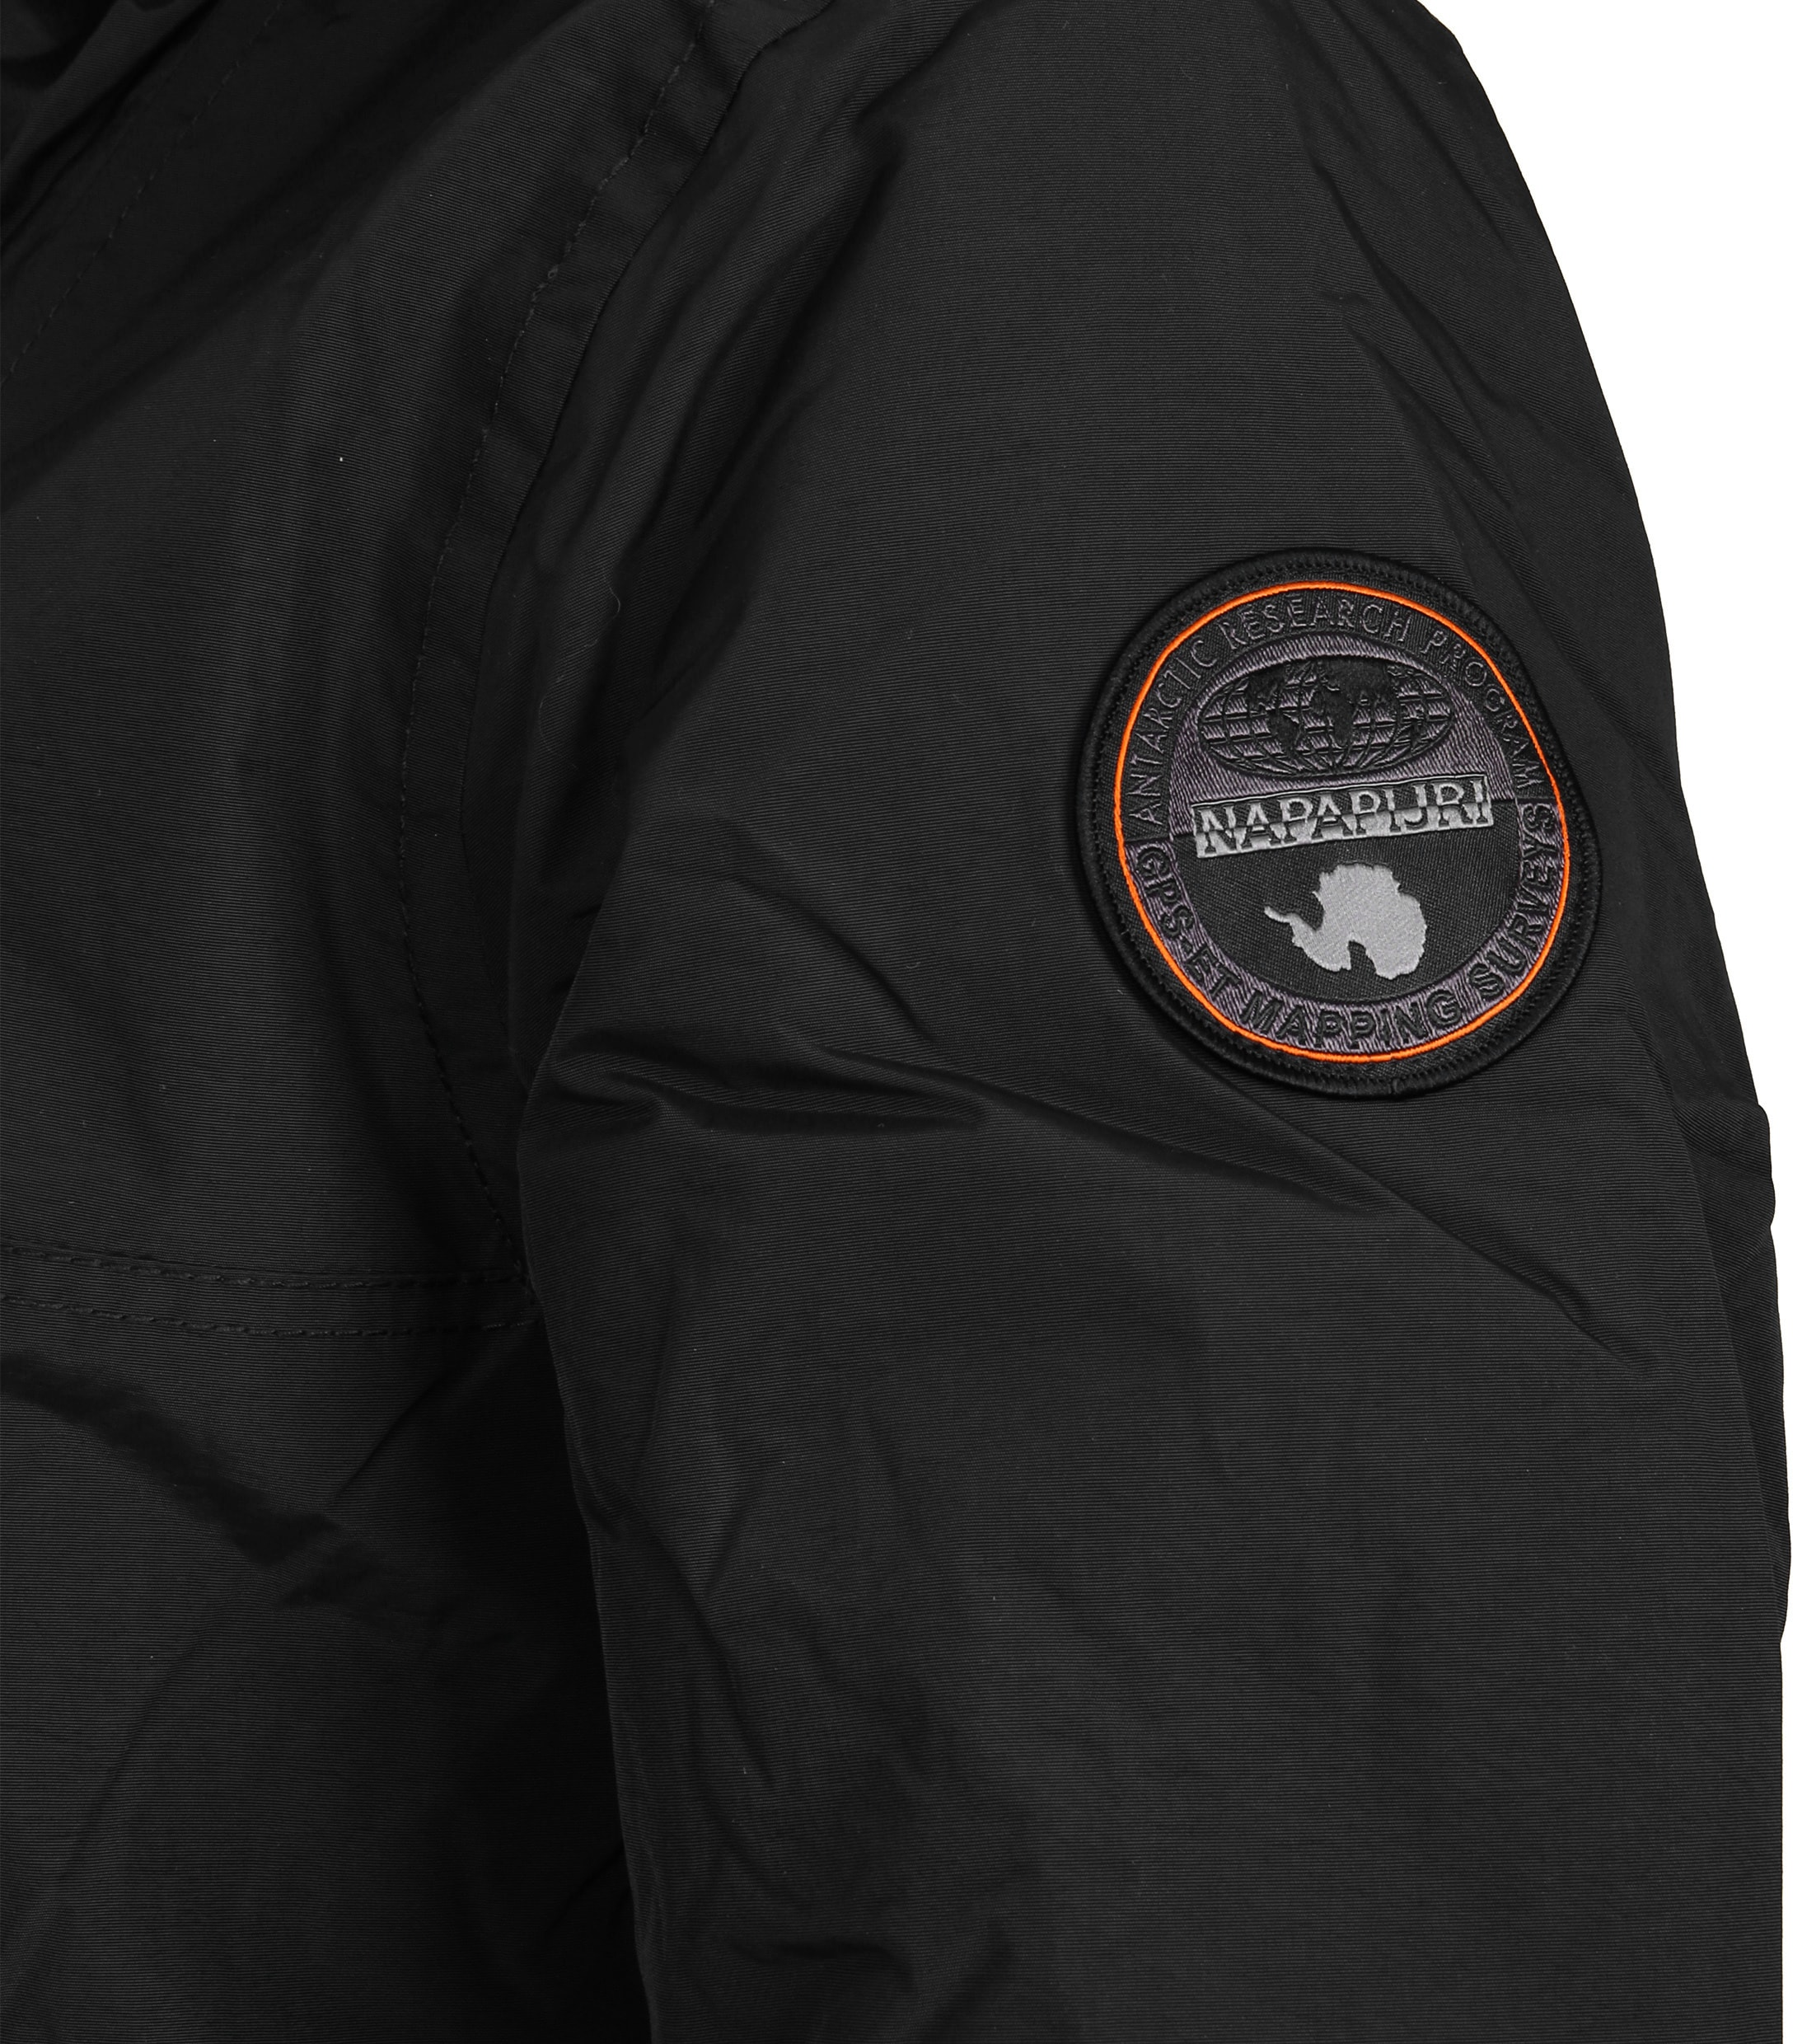 Napapijri Anorak Rainforest Pocket Black foto 4